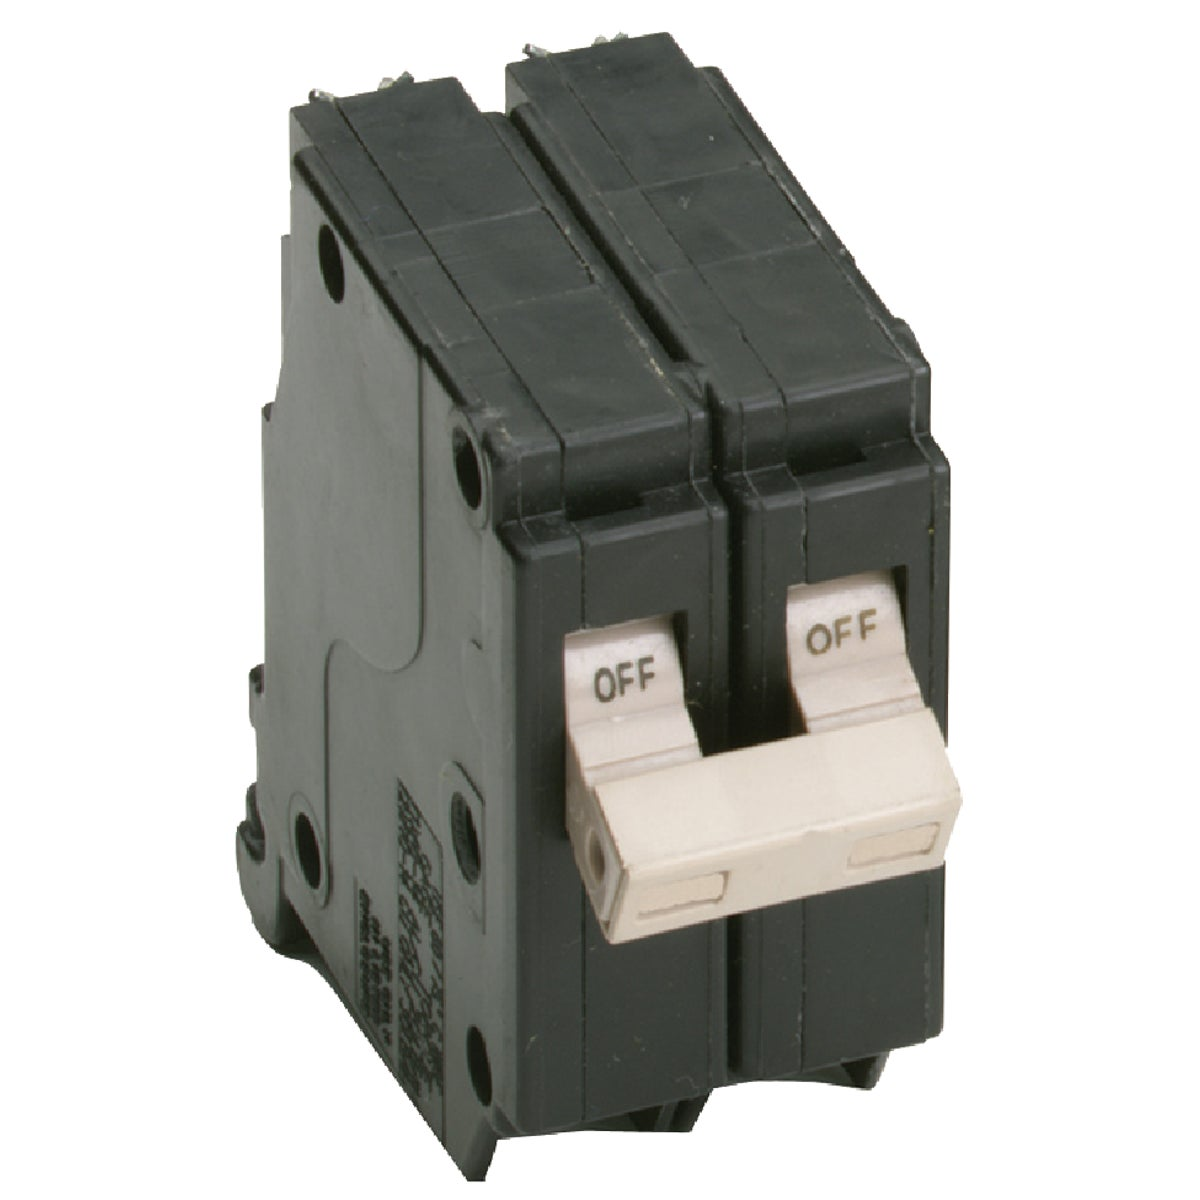 100A CIRCUIT BREAKER - CH2100 by Eaton Corporation